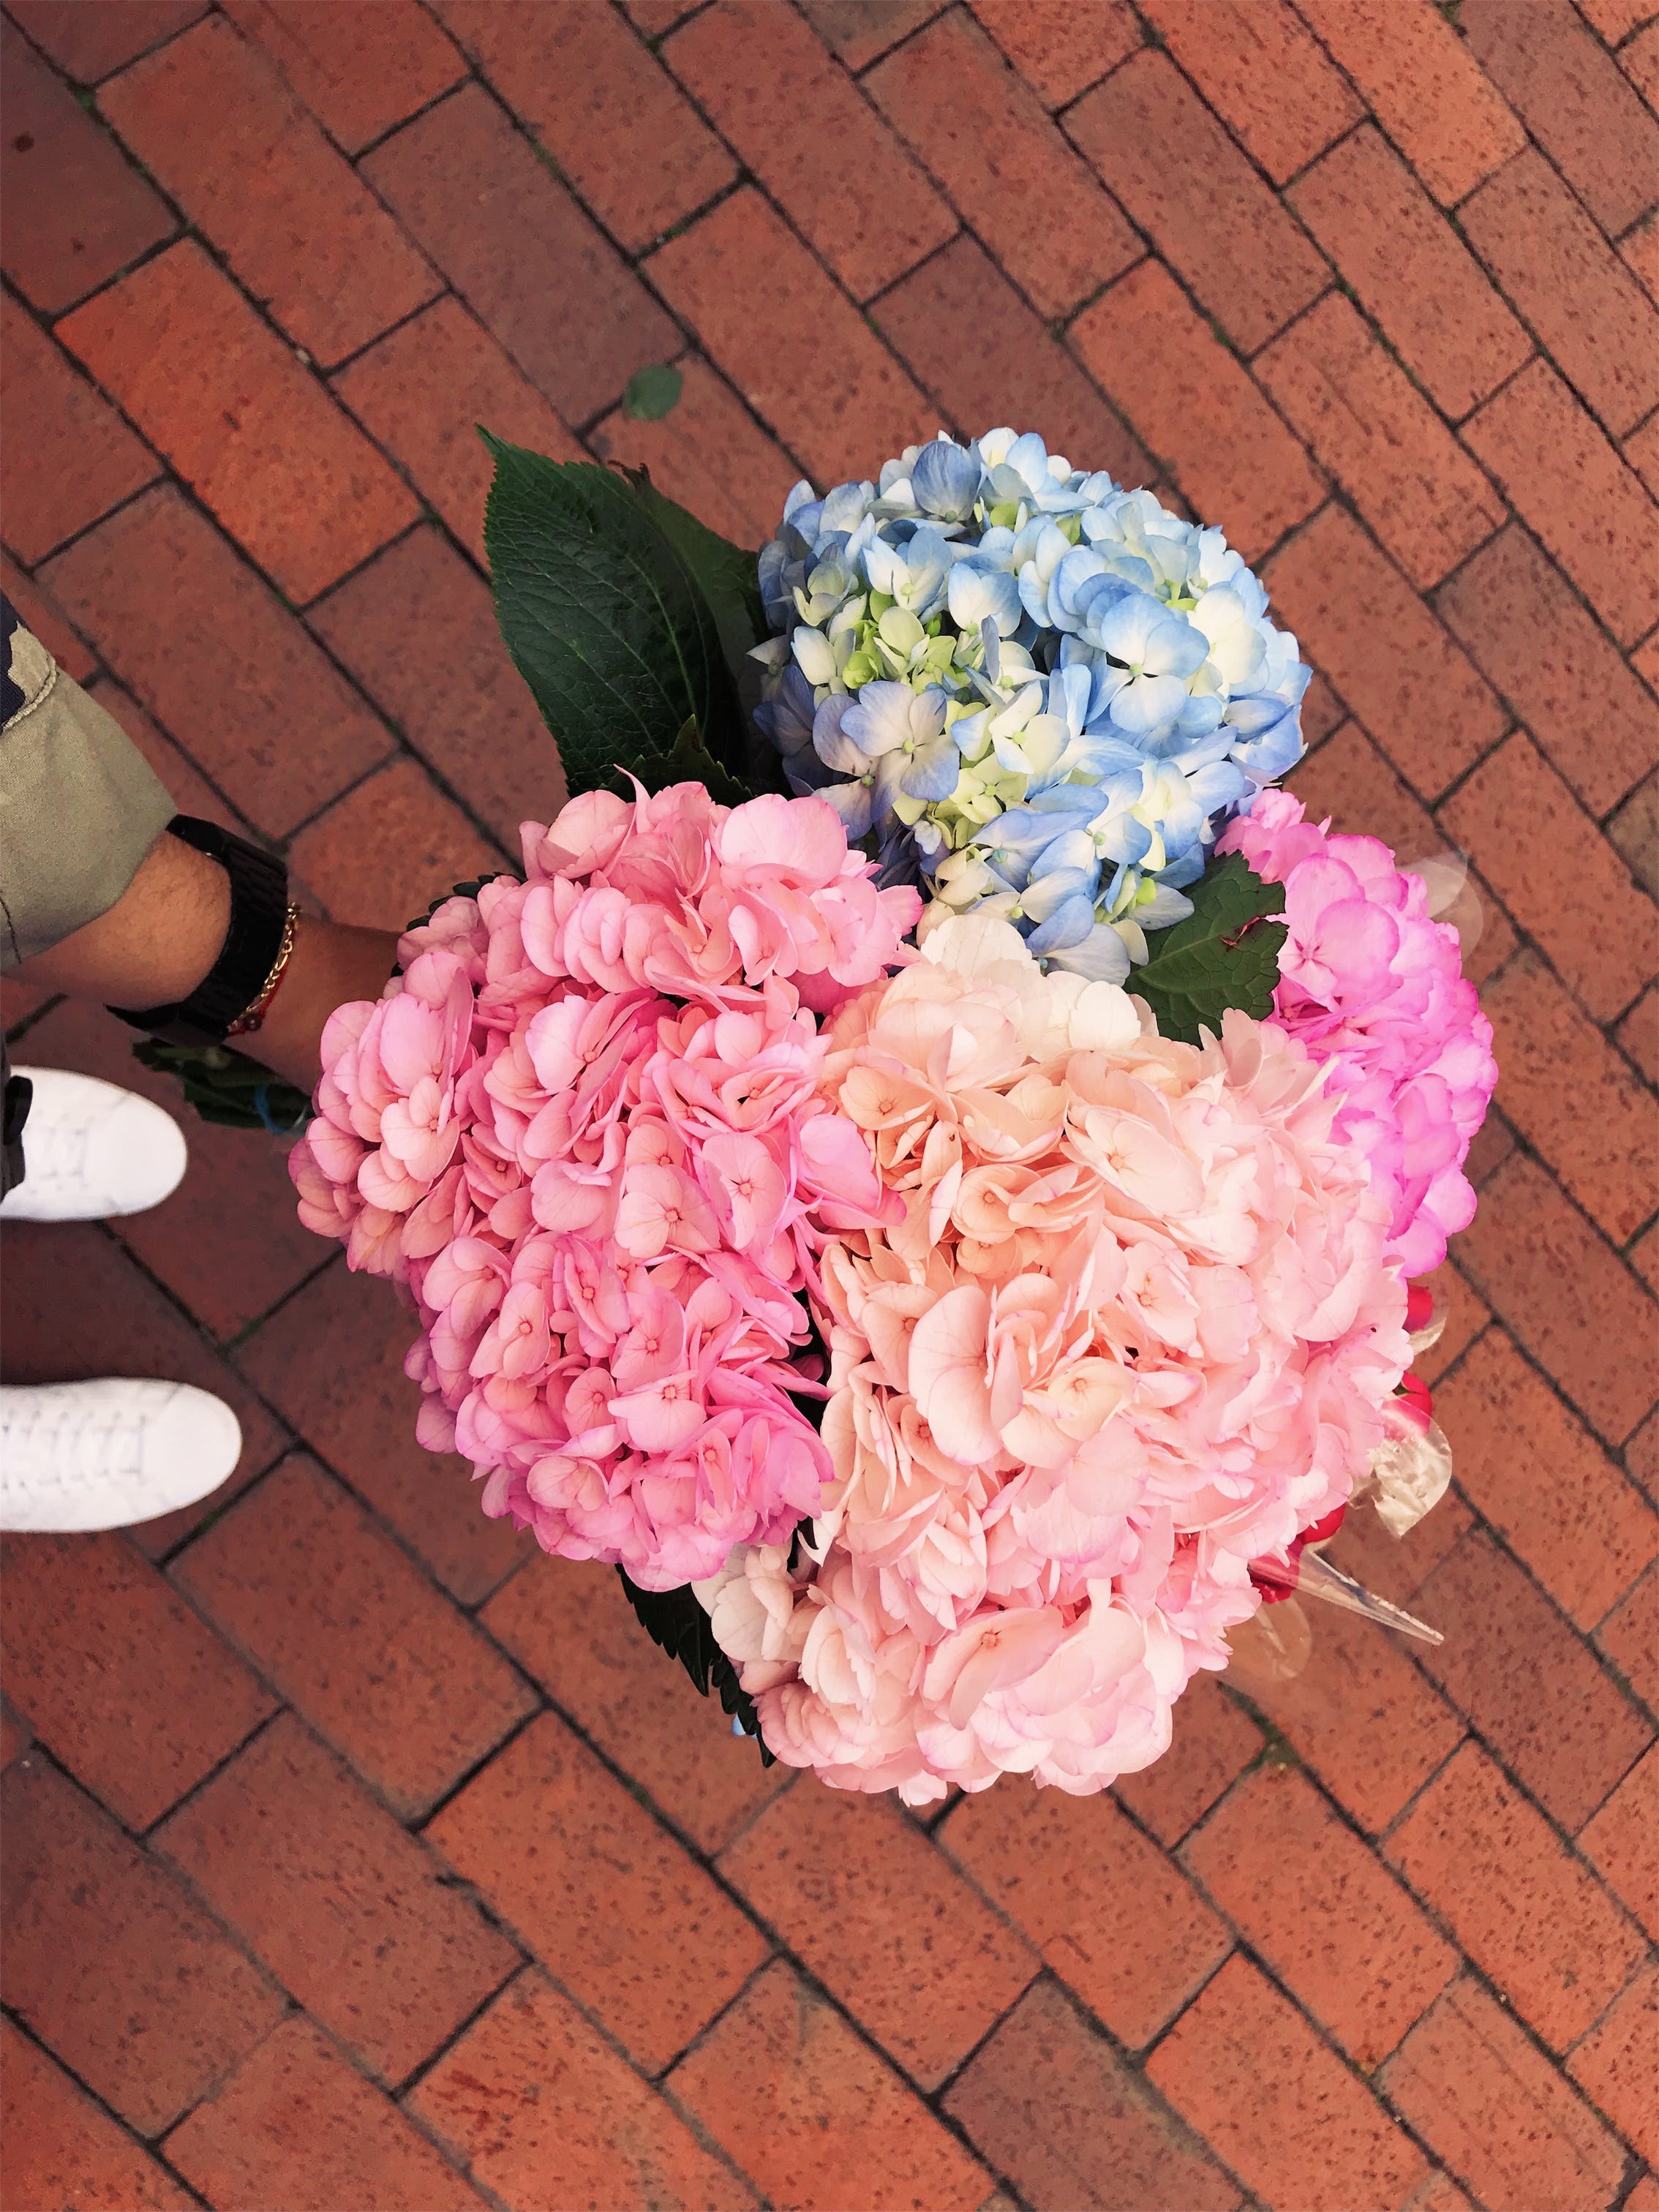 Assorted-color Flower Bouquets on Ground